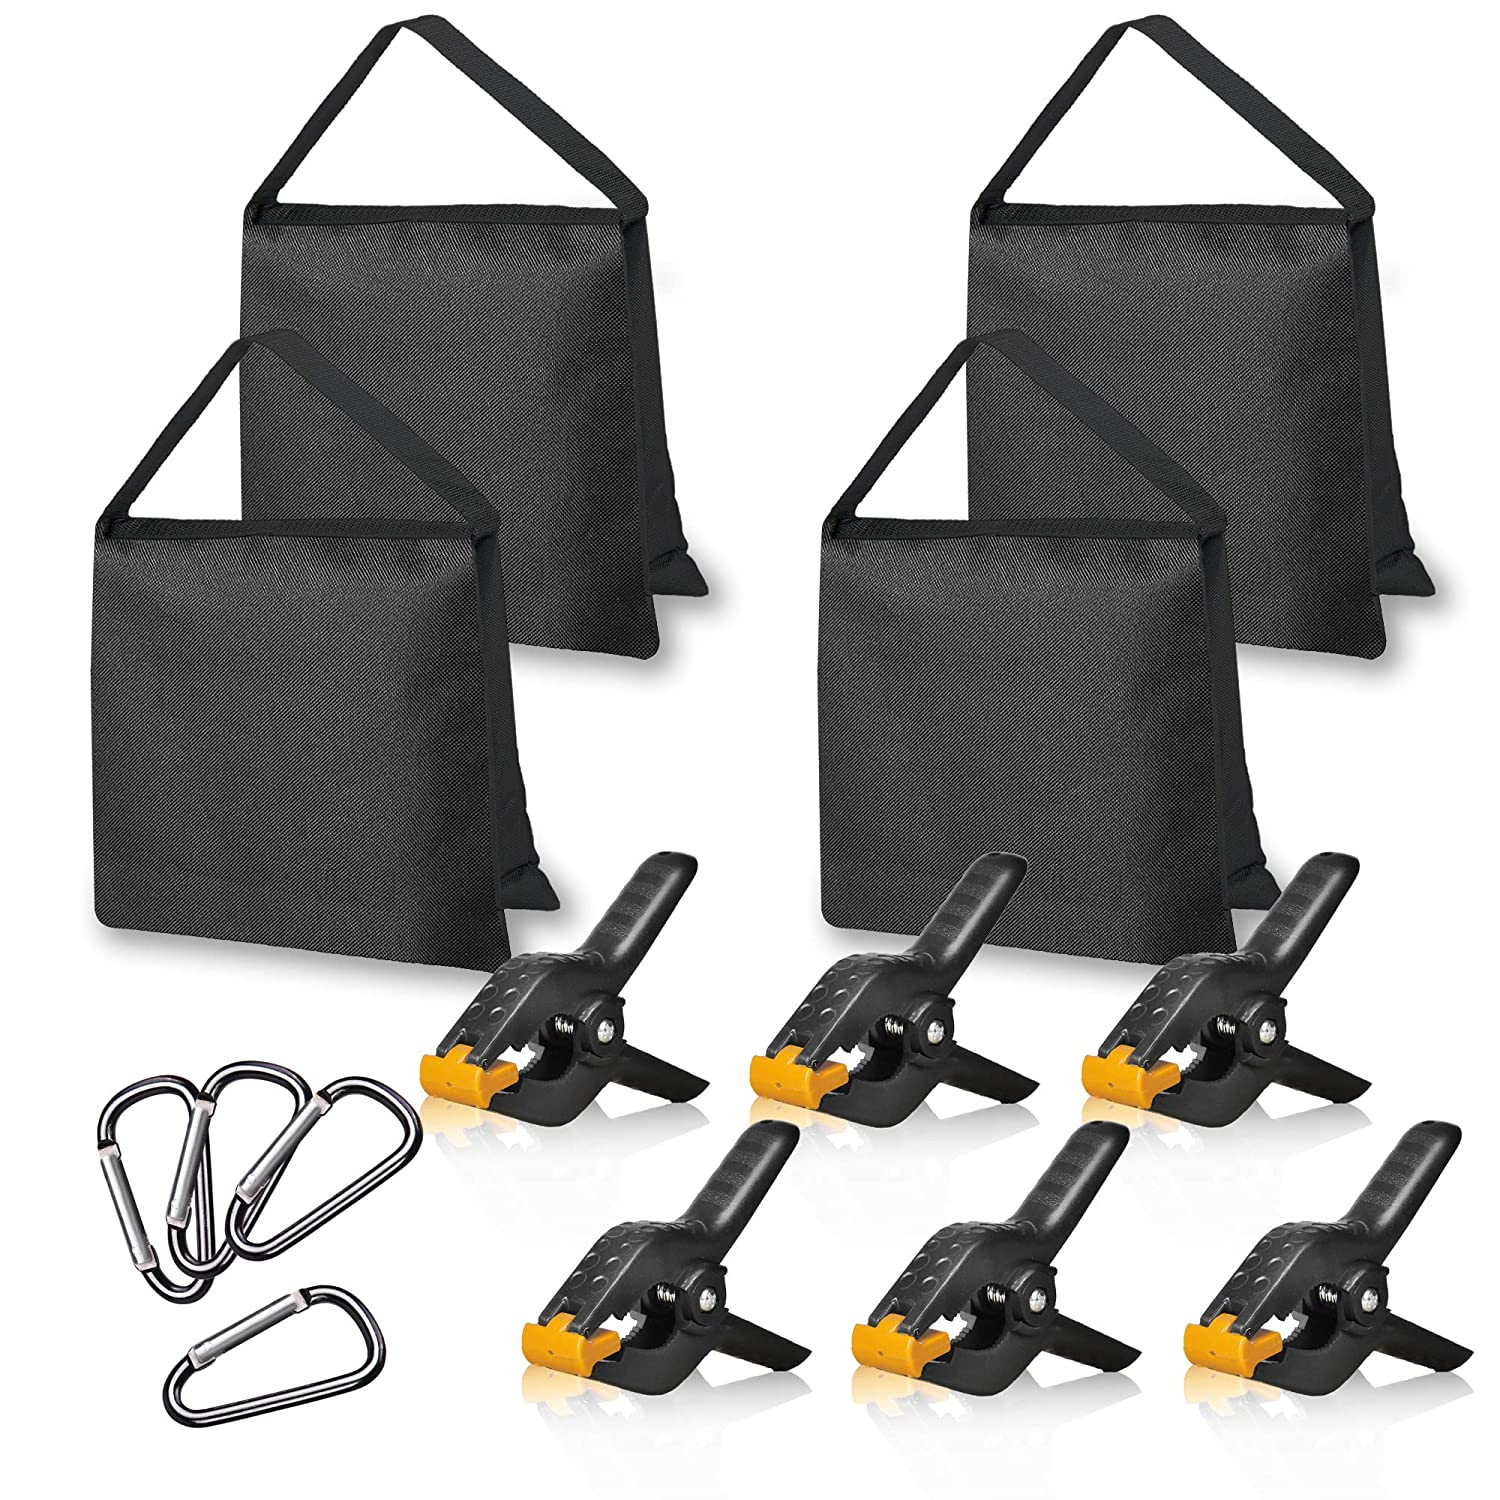 Emart 4 Packs of Heavy Duty Sandbag and 6 Packs of 4.5 inch Heavy Duty Spring Clamps Props for Photography Photo Video Studio to Fix Backdrop Stand Kit